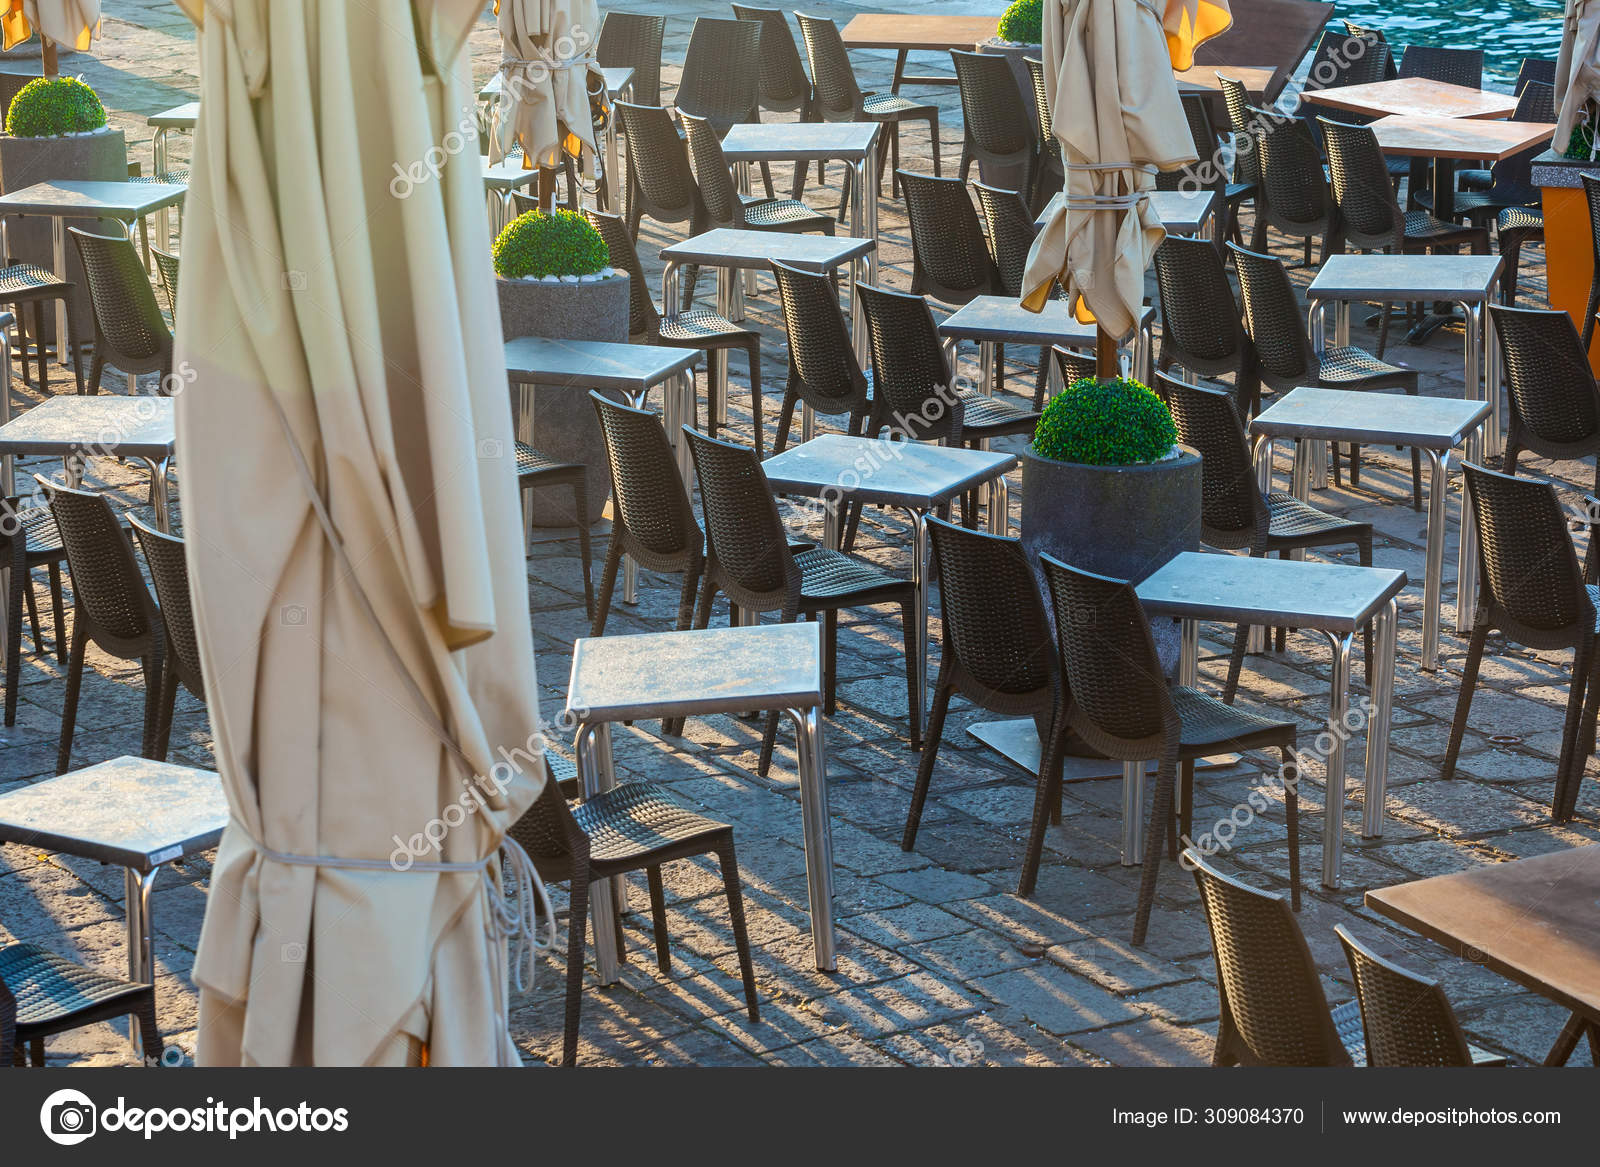 Outdoor Restaurant Table On San Marco Square Venice Italy Stock Photo C Samurkas 309084370